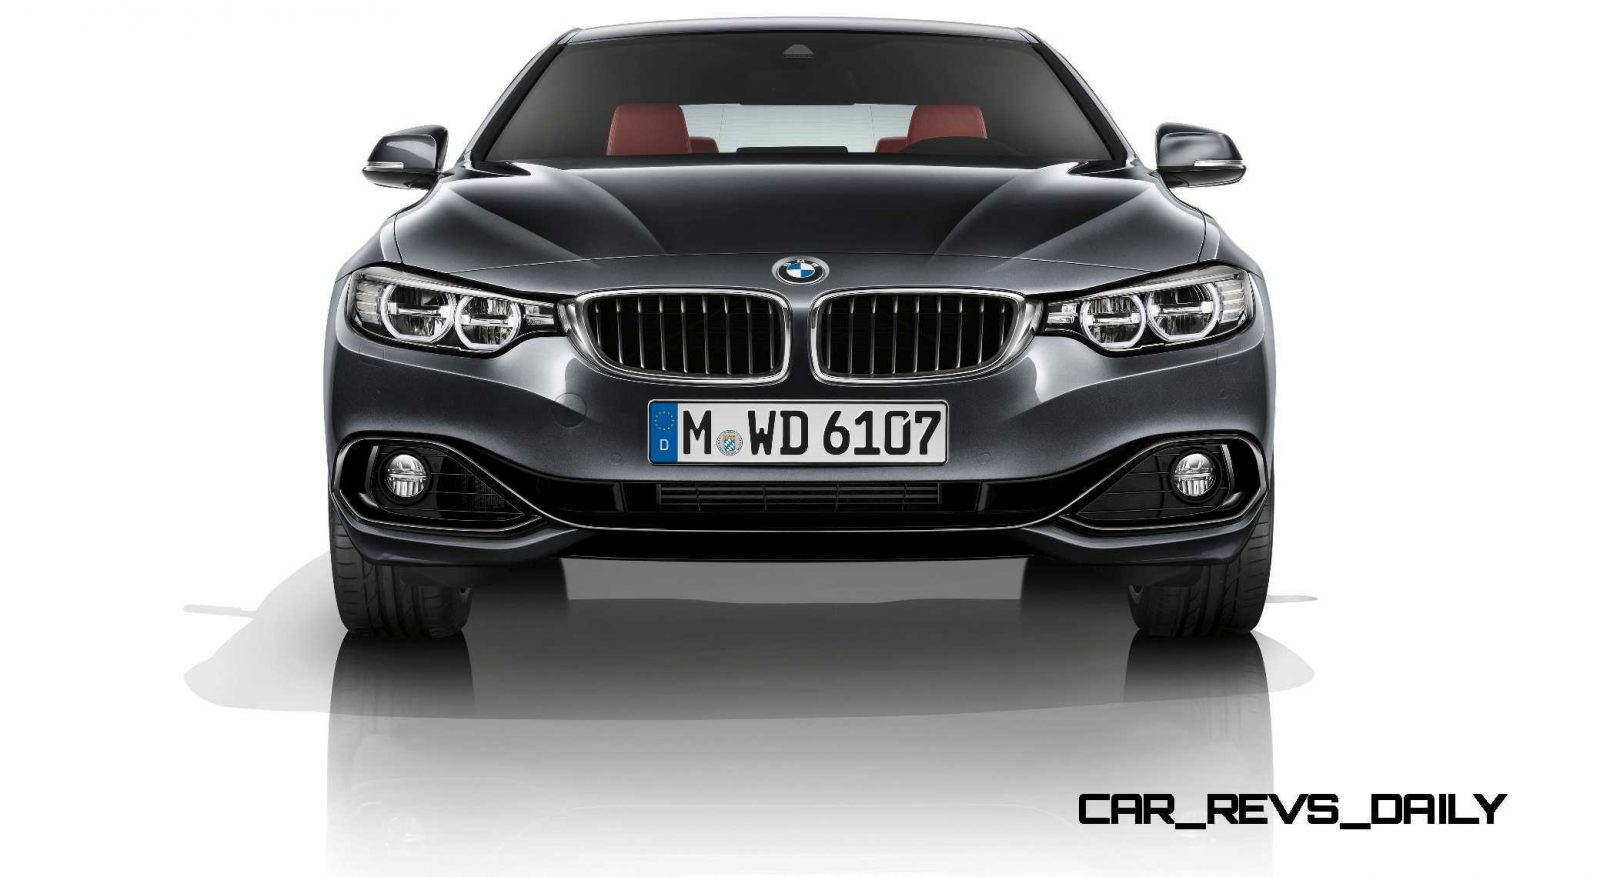 Latest BMW 435i Track Photos Show Beautiful Proportions 63